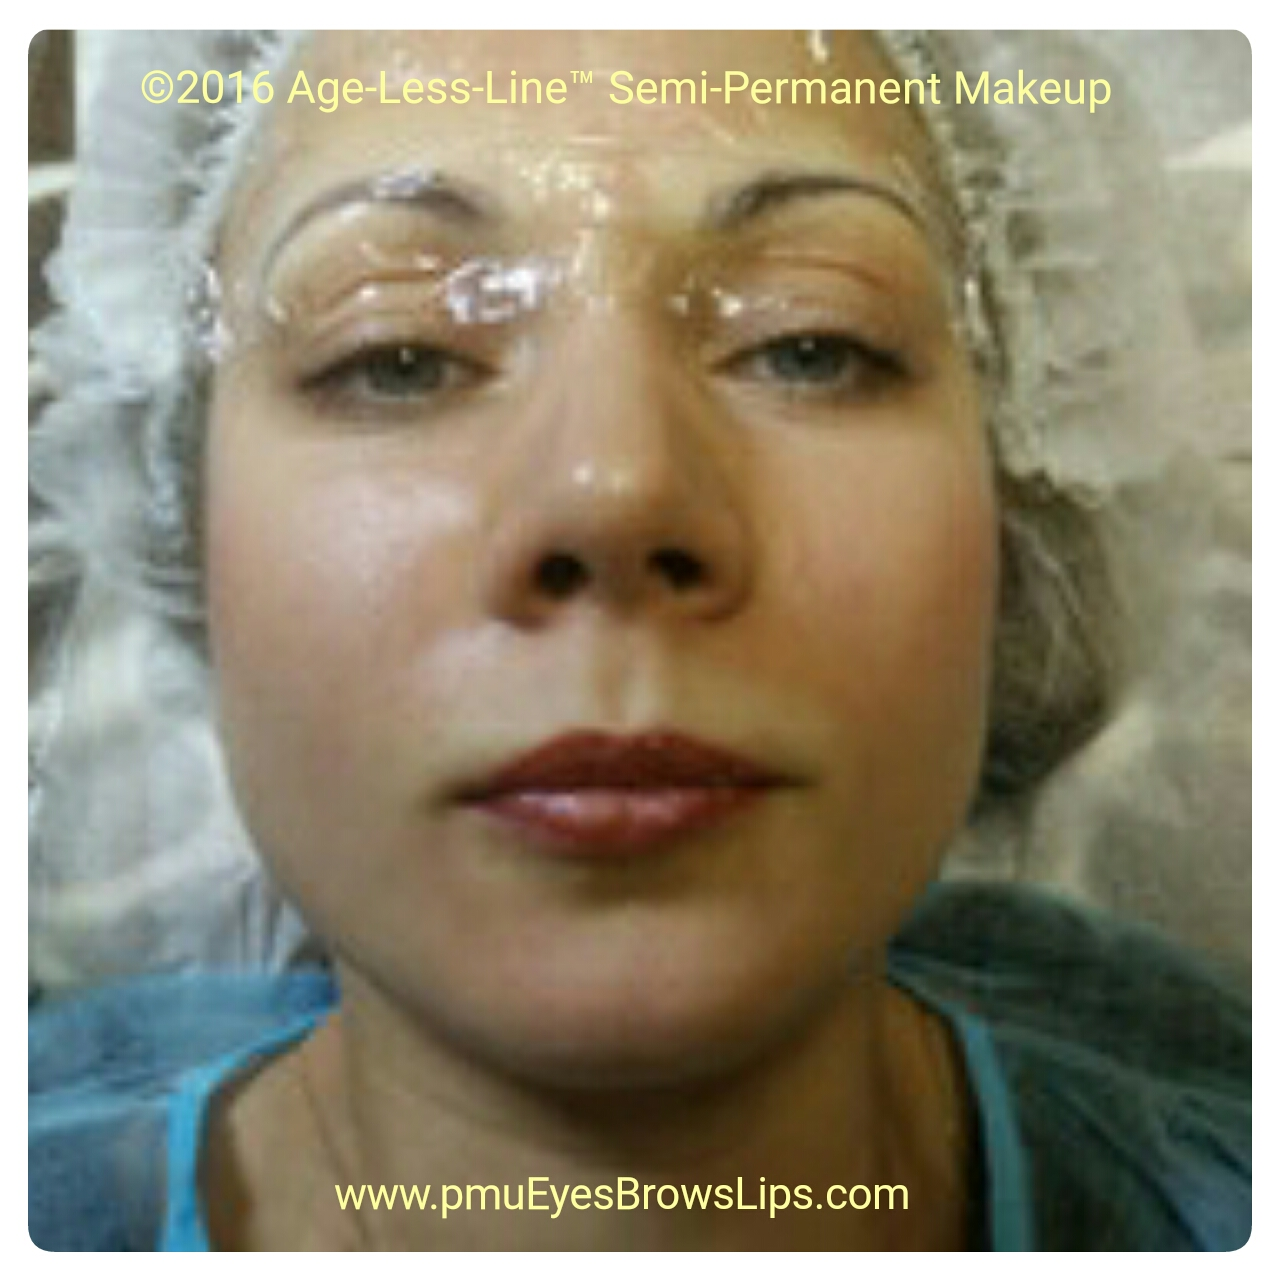 anesthetic before permanent makeup